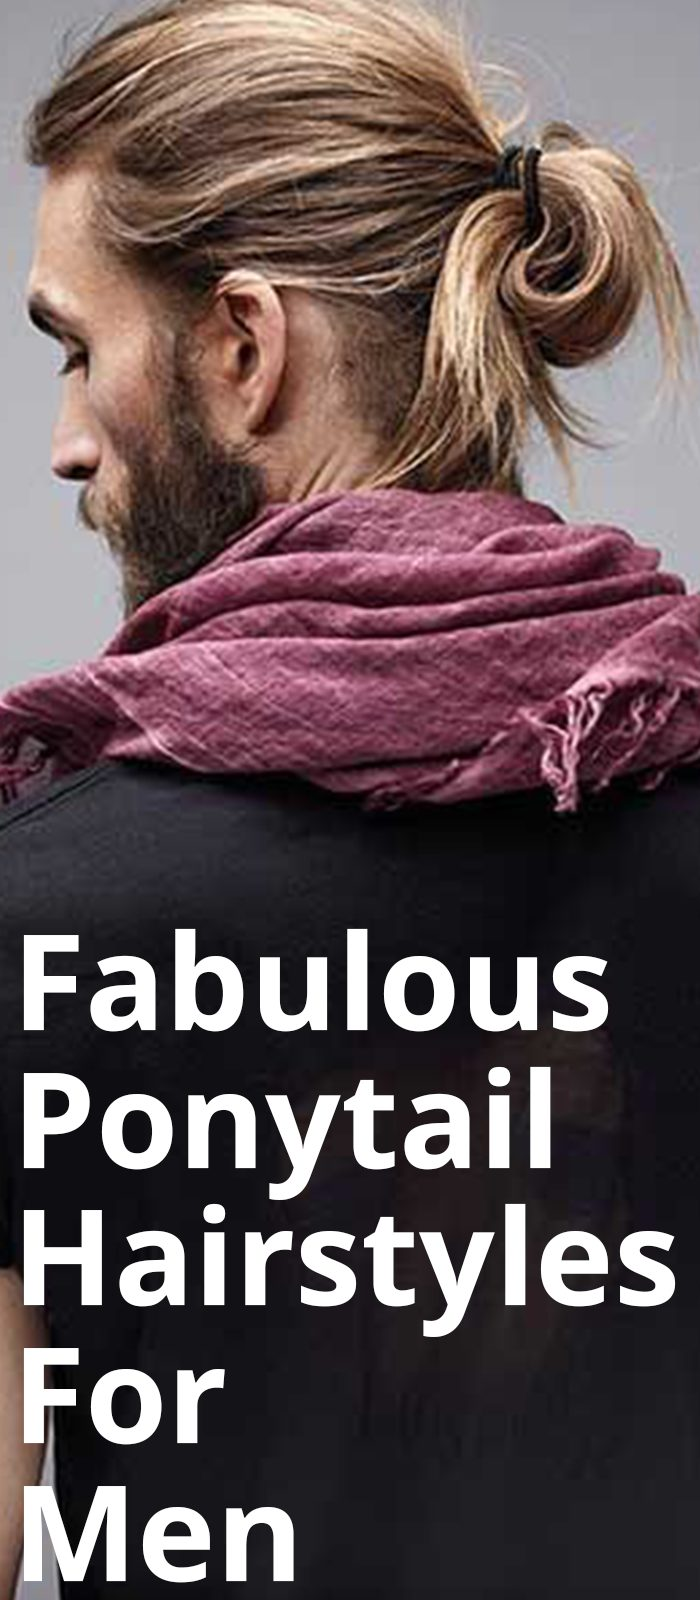 Fabulous Ponytail Hairstyles For Men